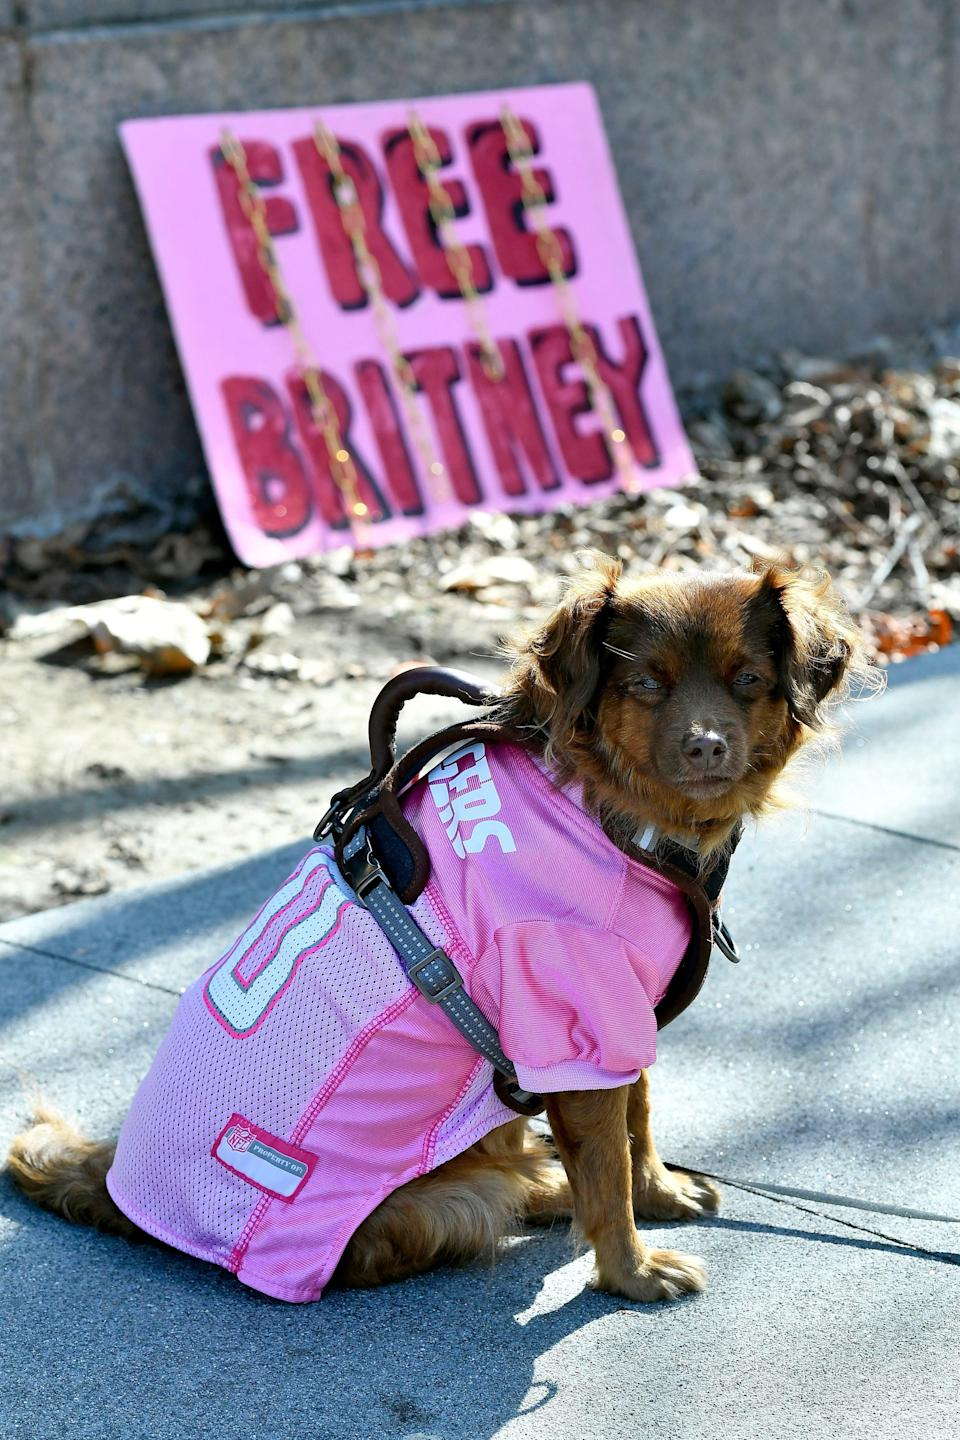 Supporters, including this dog, have been supportng the singer in her bdid to have her father removed as her conservatorGetty Images